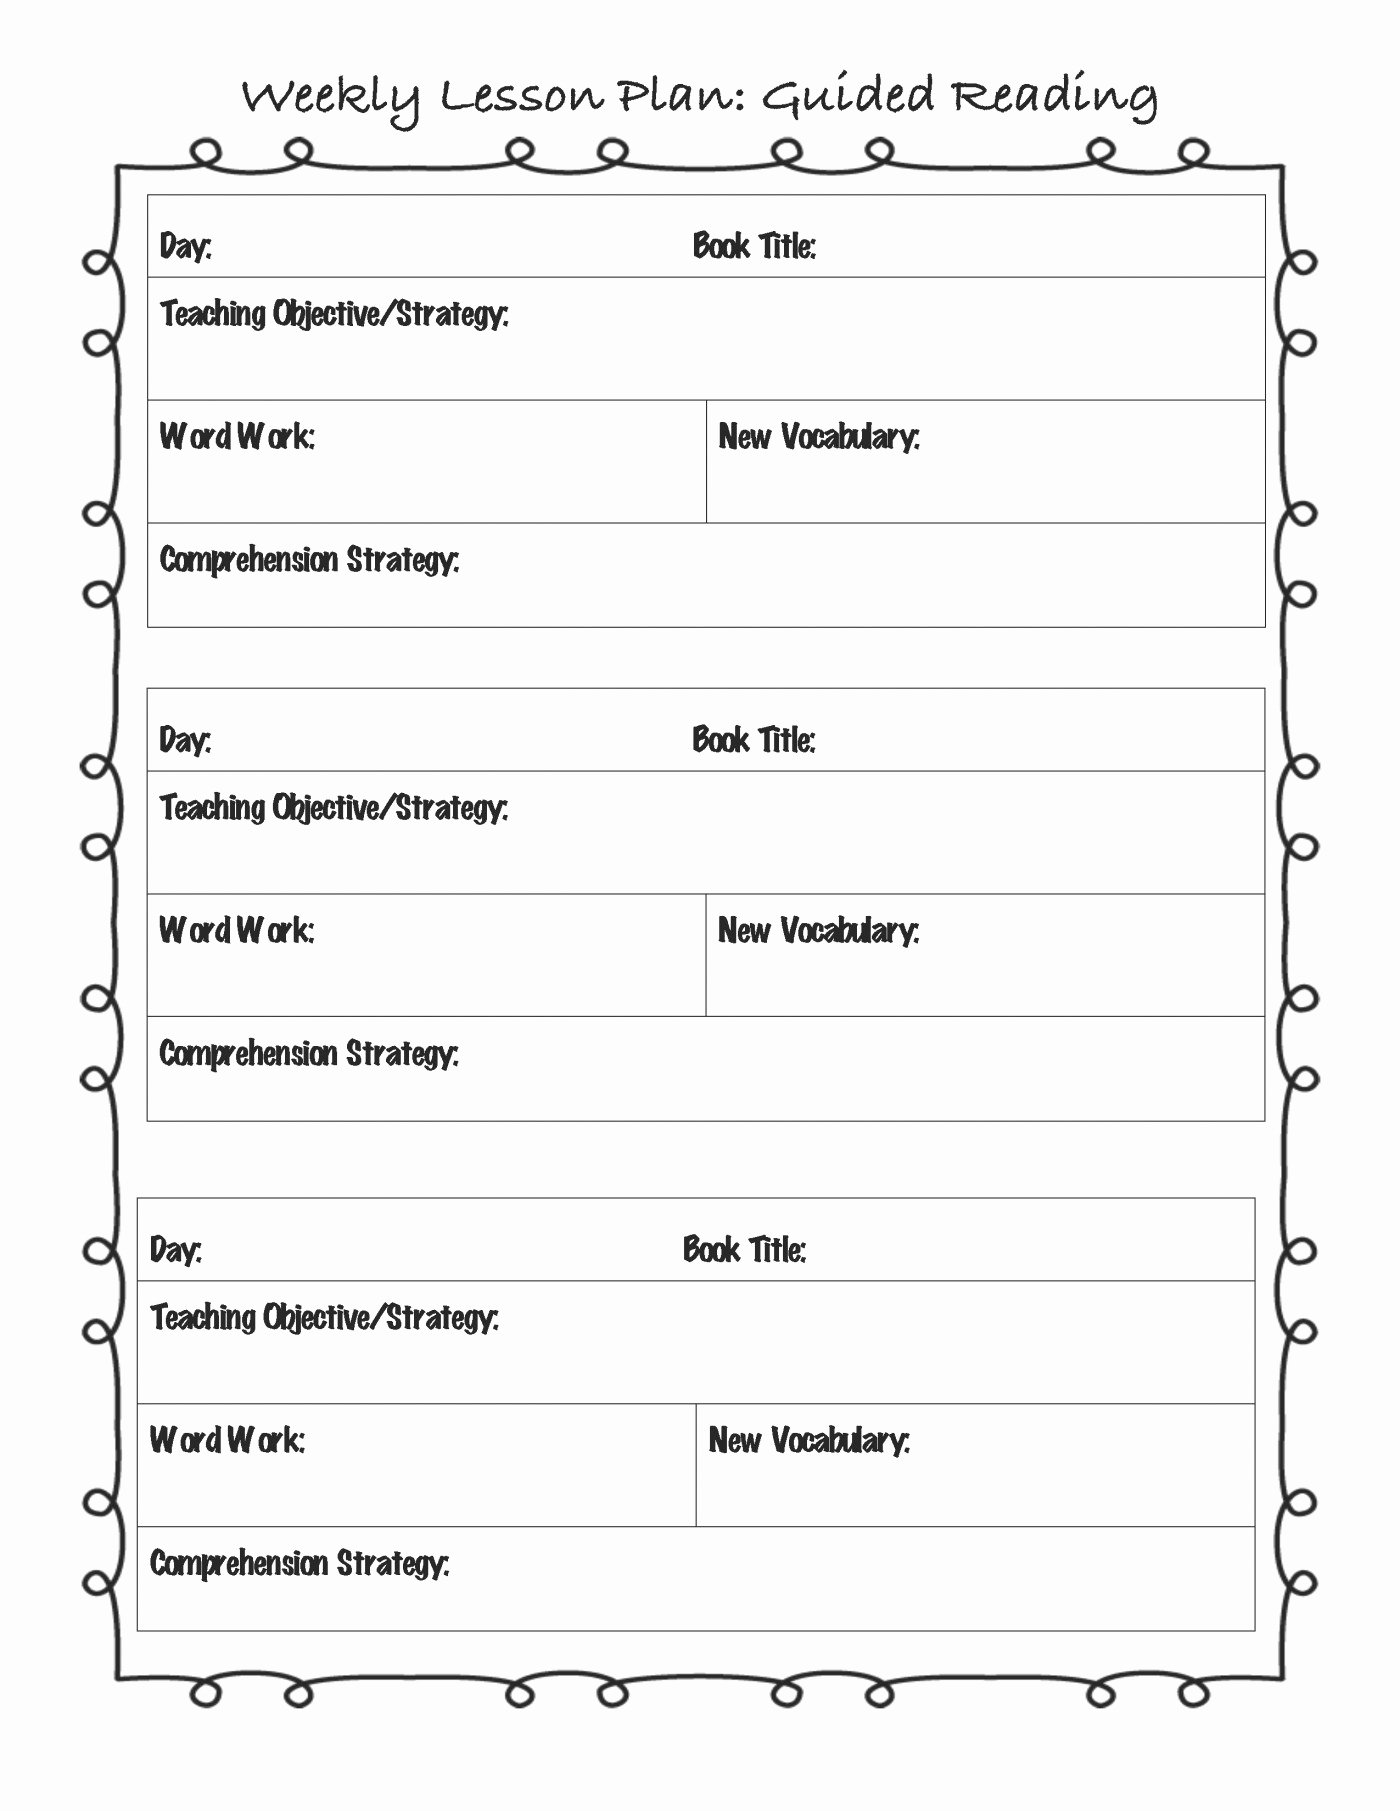 Editable Weekly Lesson Plan Template Unique Editable Lesson Plan Template Pdf – Weekly Lesson Plan